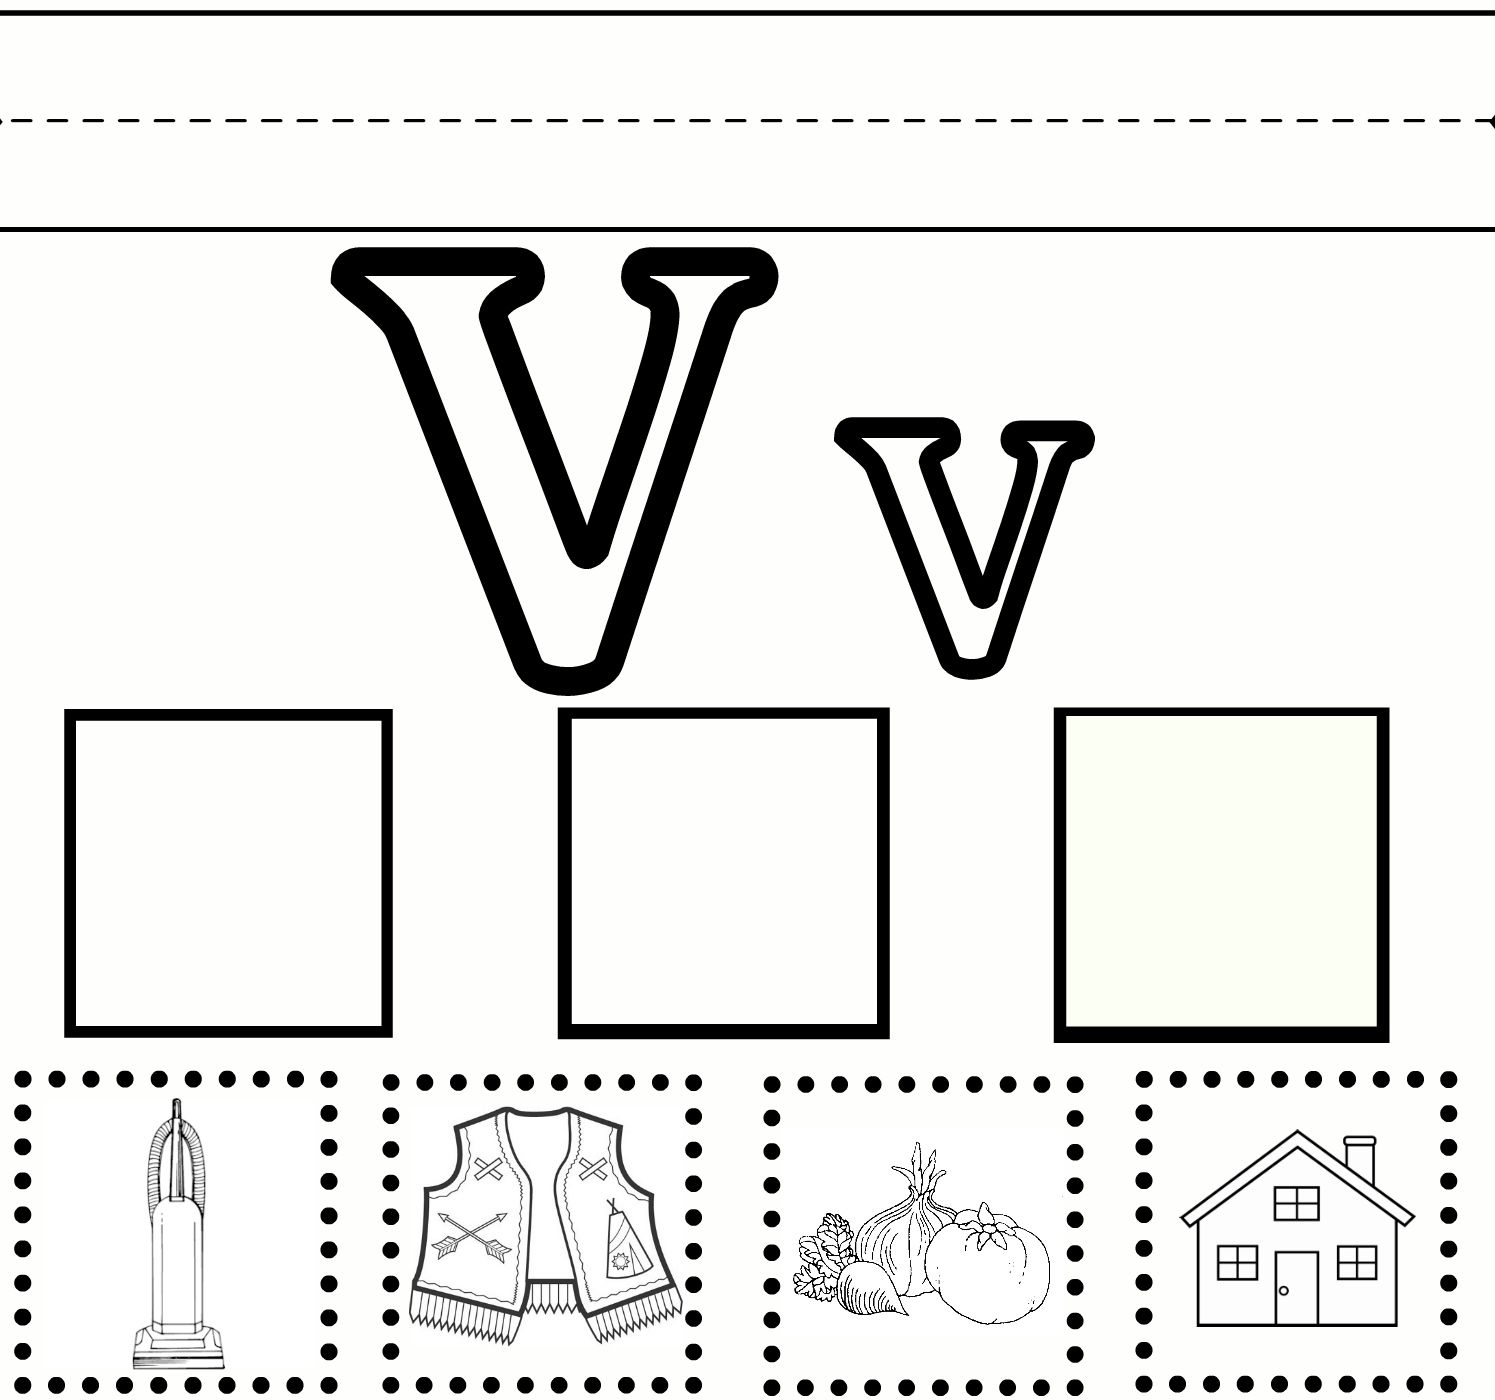 V Practice | Preschool Worksheets, Letter V Worksheets for Letter V Worksheets Pre K